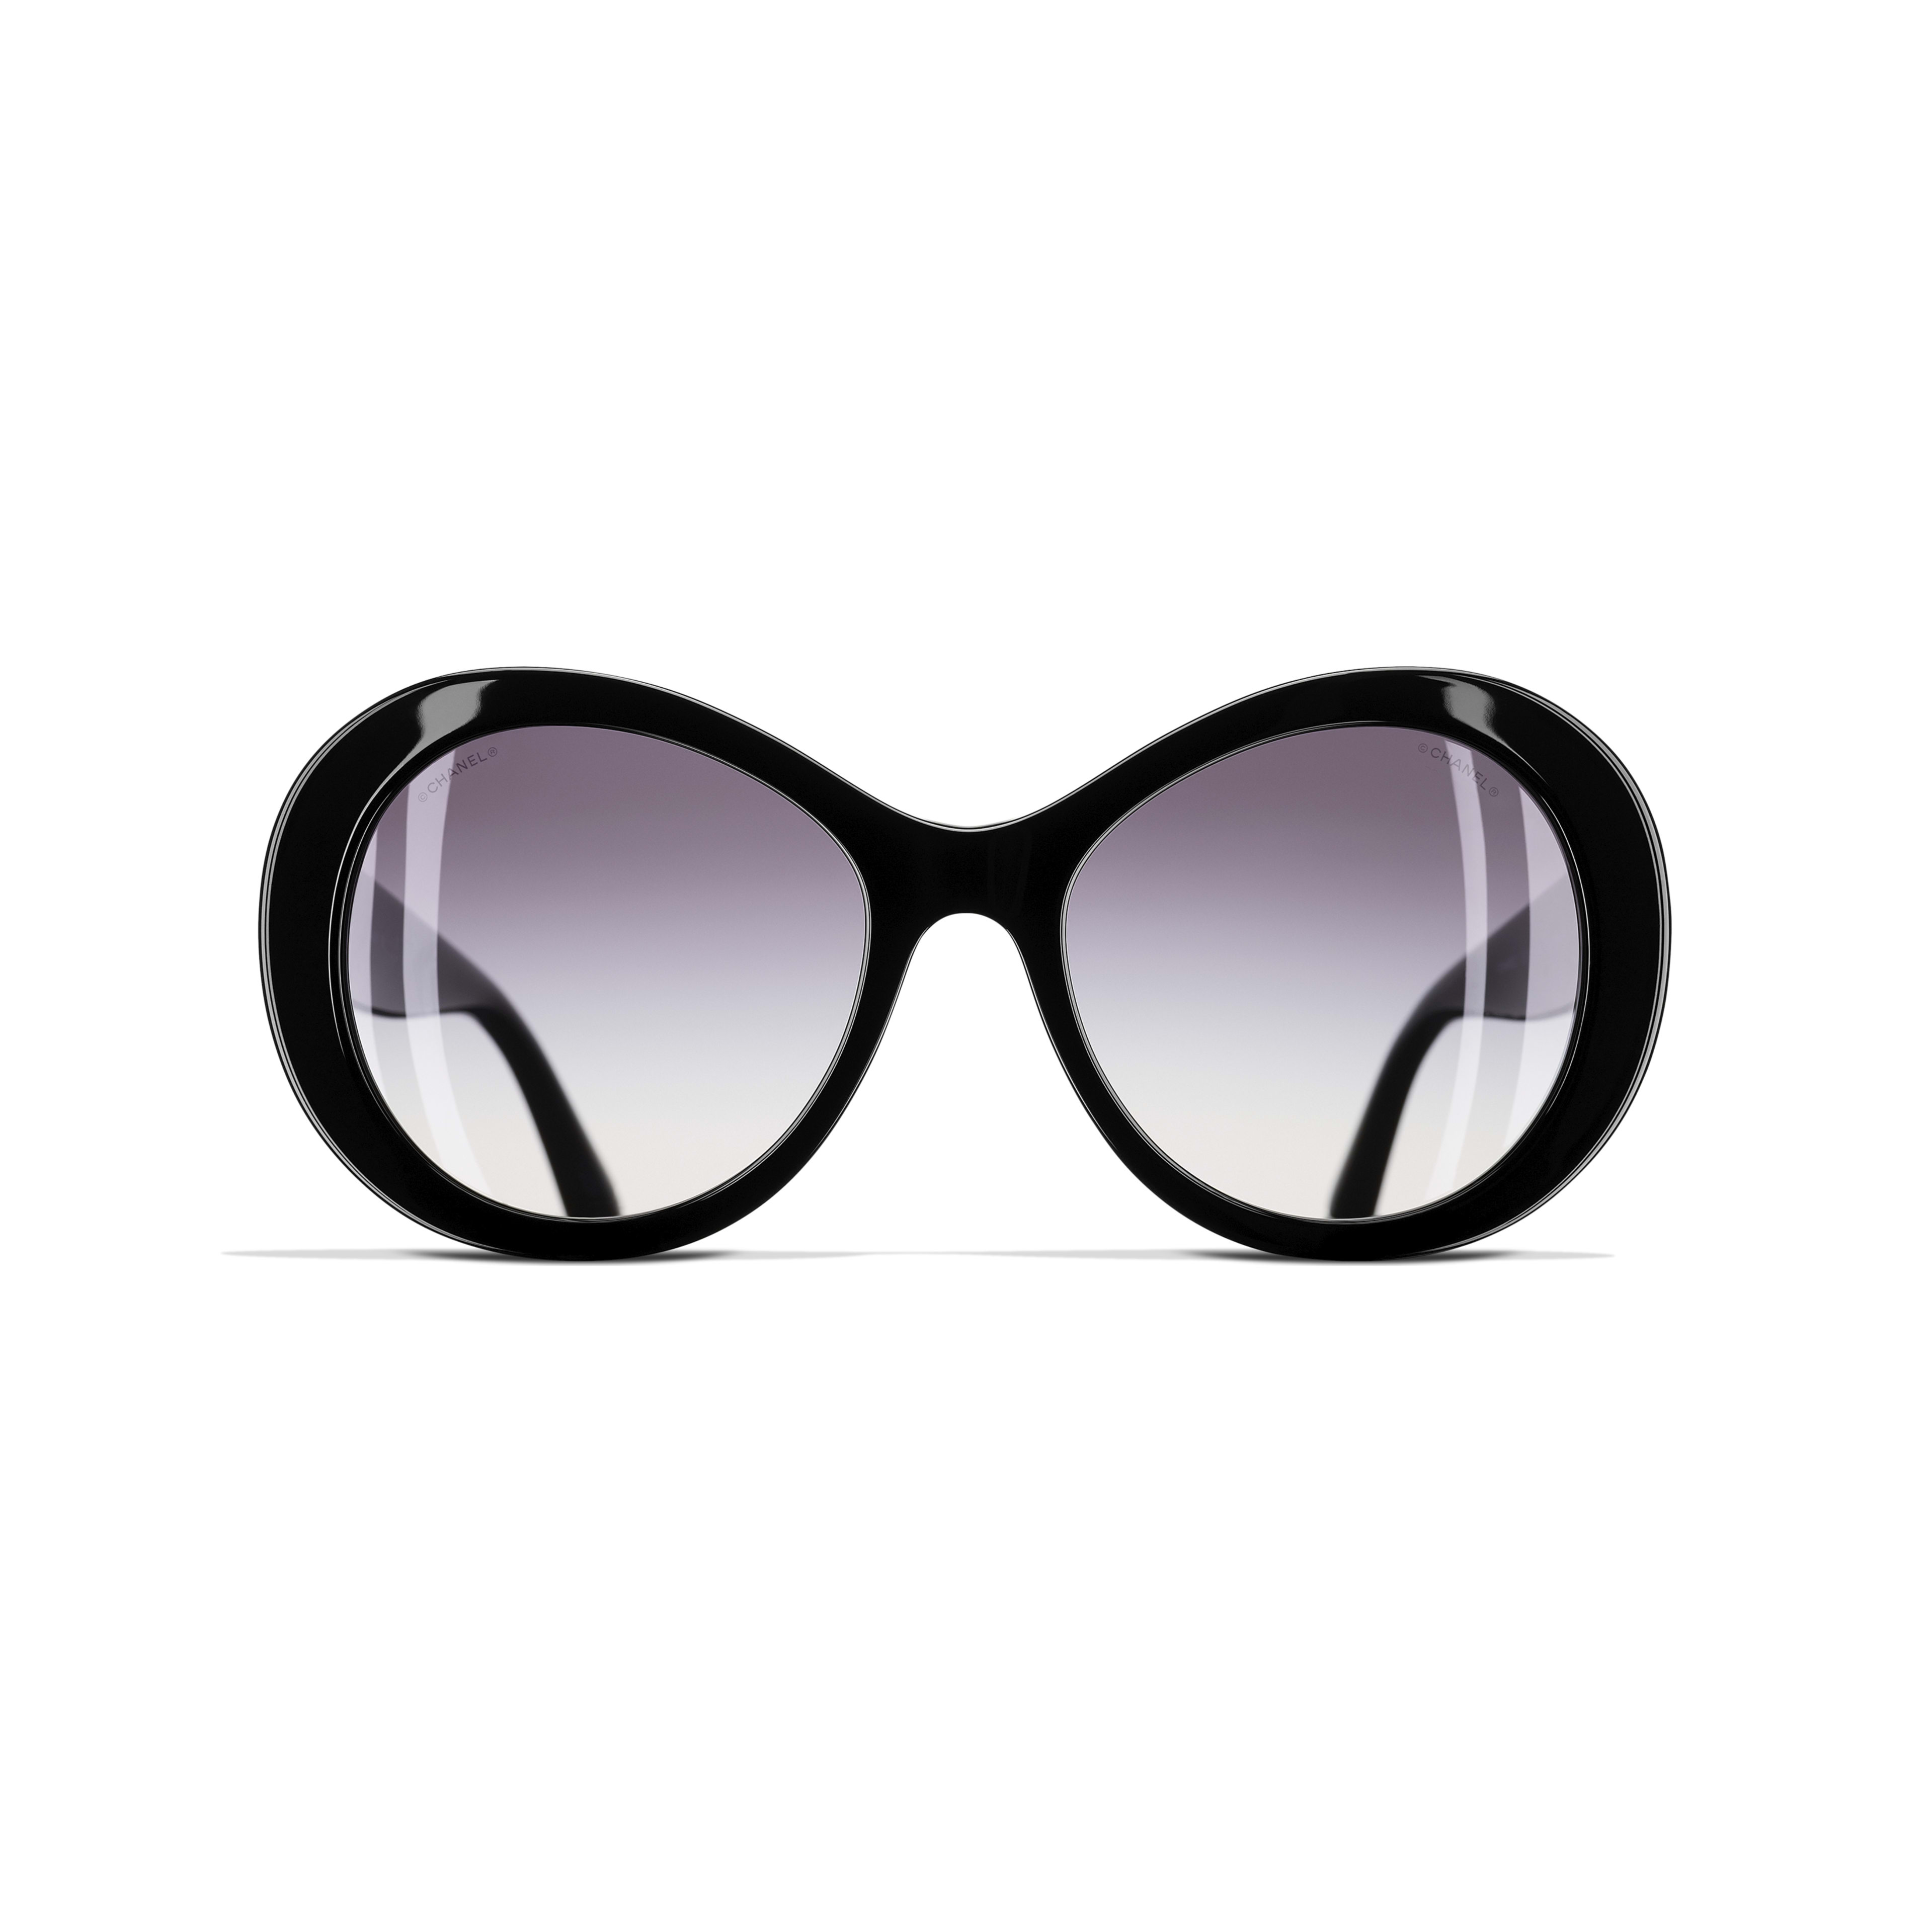 Oval Sunglasses Acetate Black -                                                    view 2 - see full sized version